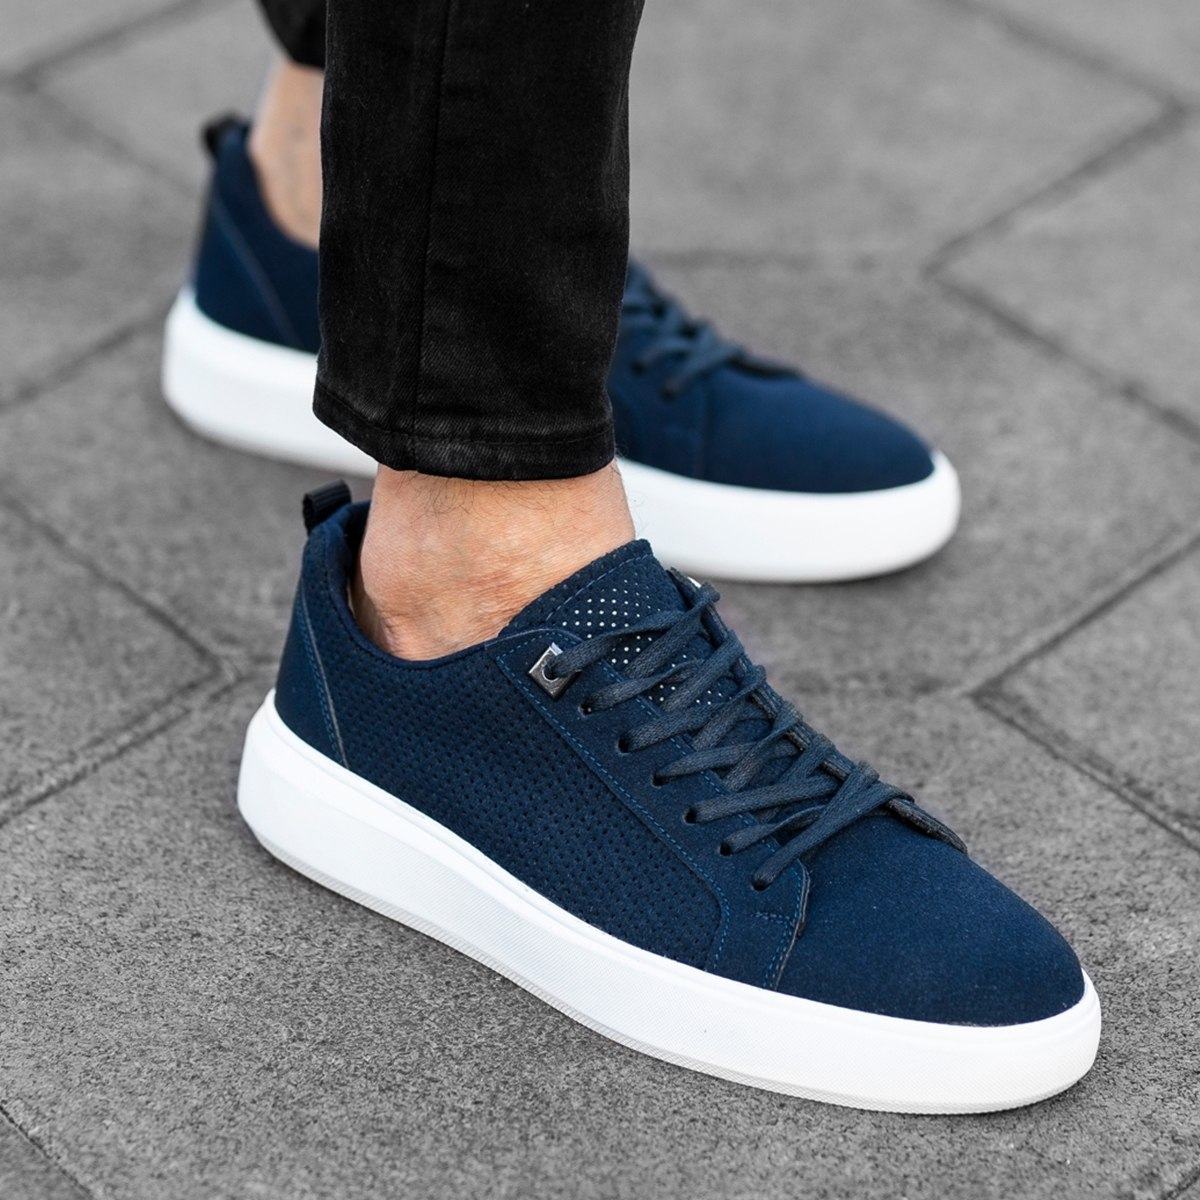 Premium Suede Sneakers in Blue Mv Premium Brand - 1